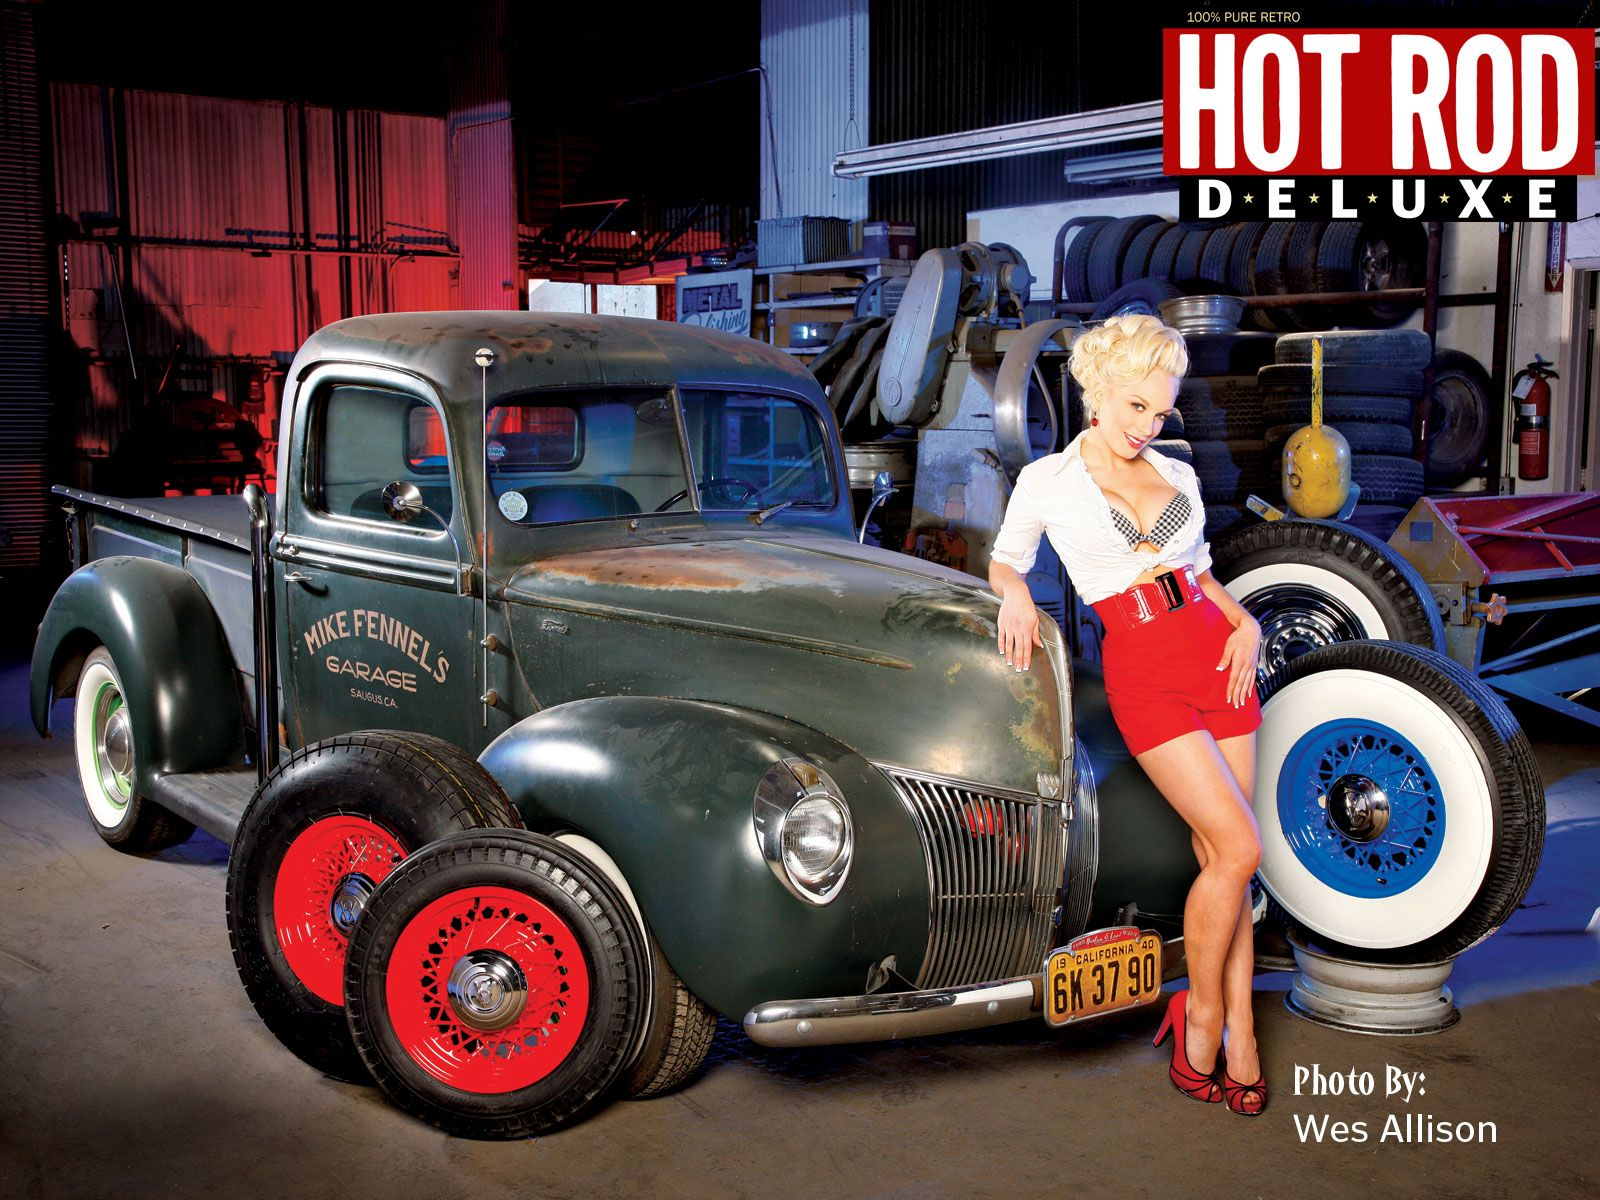 1955 chevrolet hot rod truck pictures to pin on pinterest - Hot Rod Pin Up Models Wallpapers Pin Up Hot Rod 1600x1200 474898